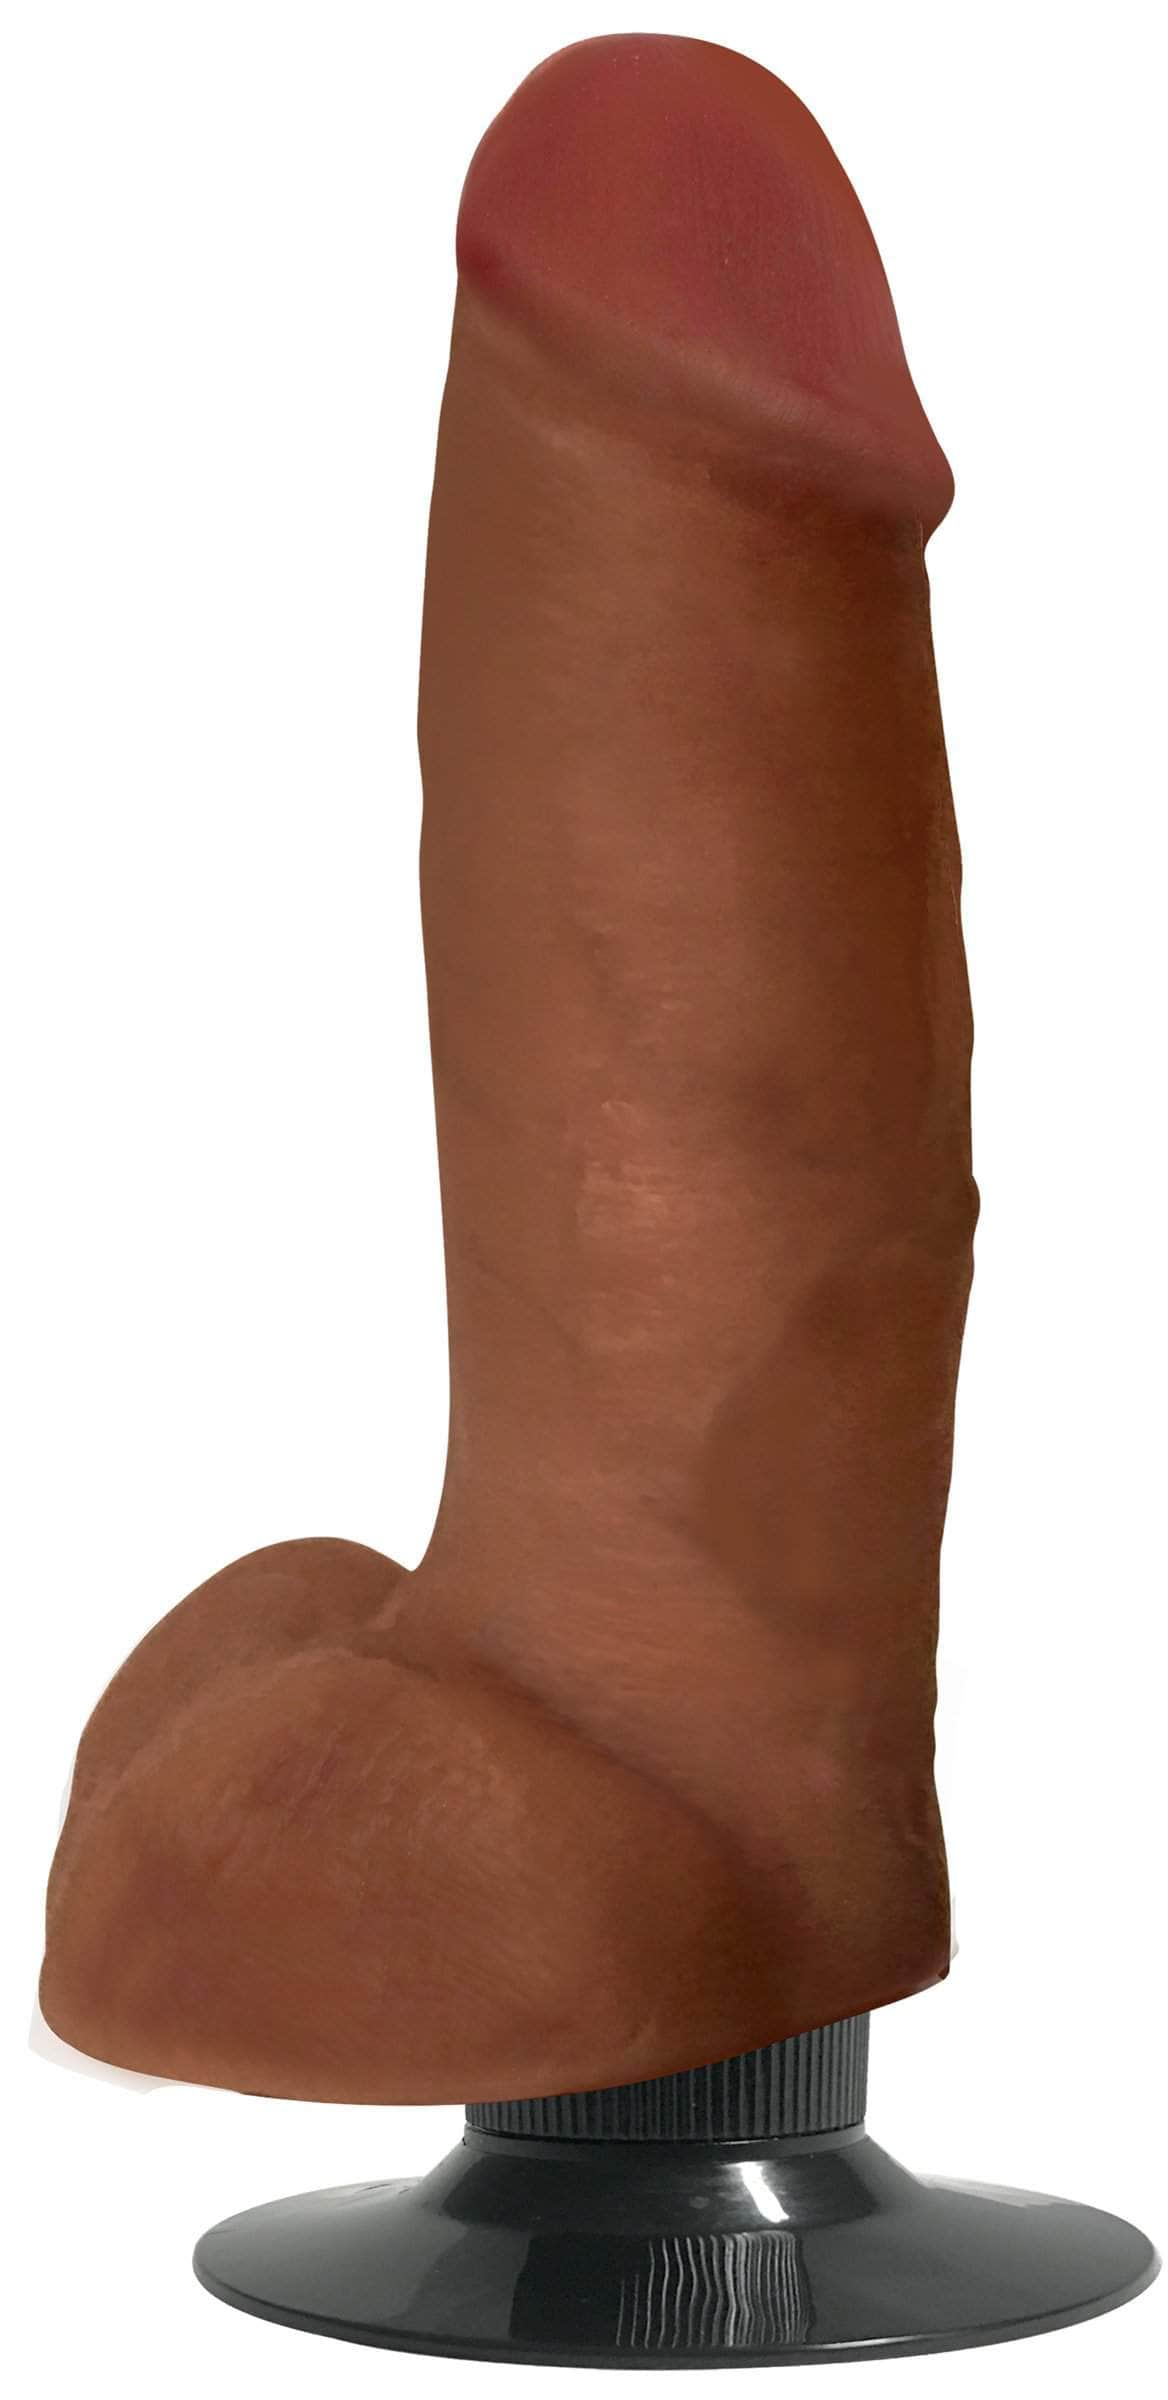 Jock Dark Bareskin Vibrating Dildo With Balls - 7 Inch